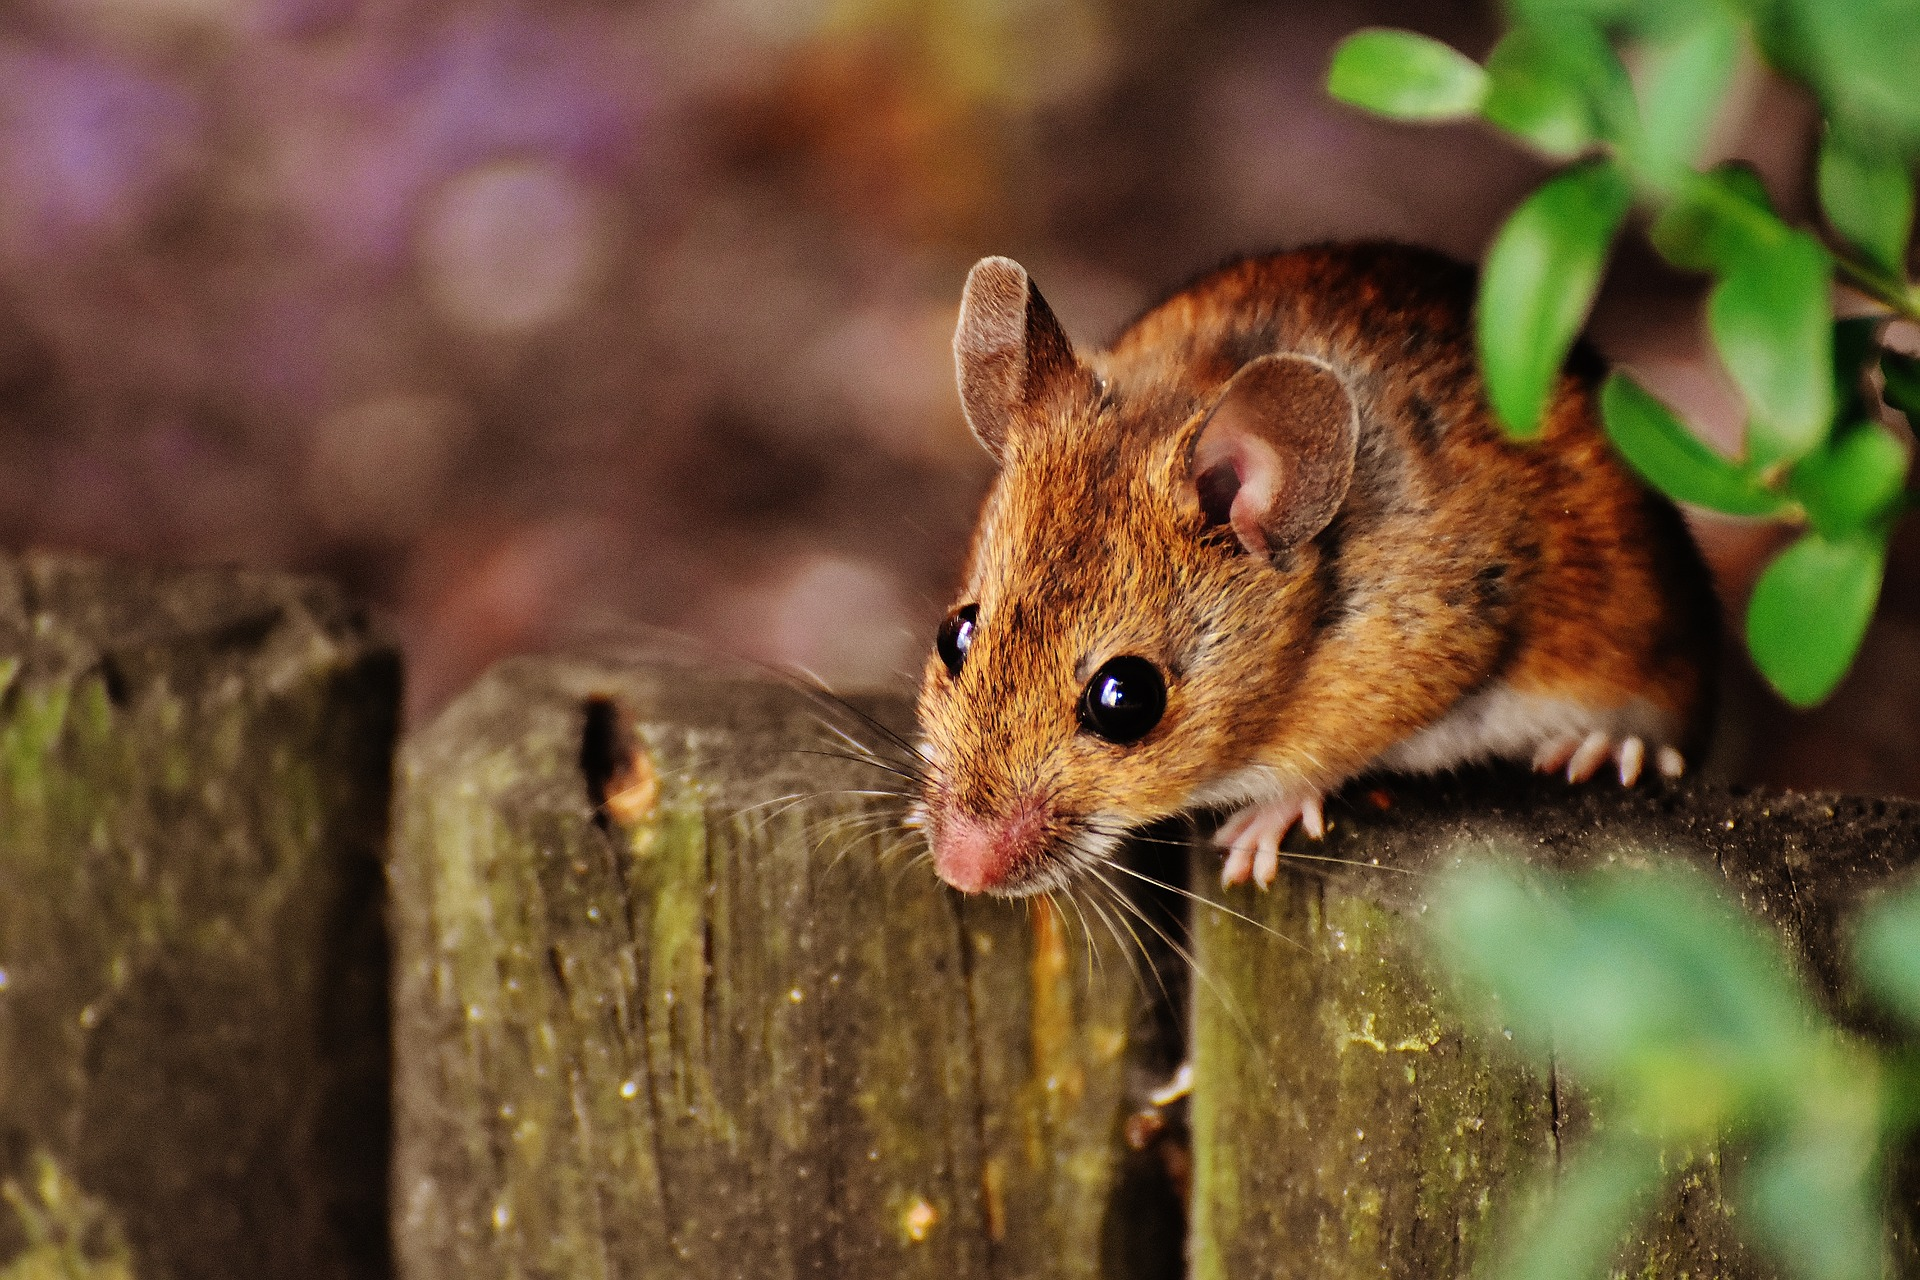 Mouse in an outside natural environment